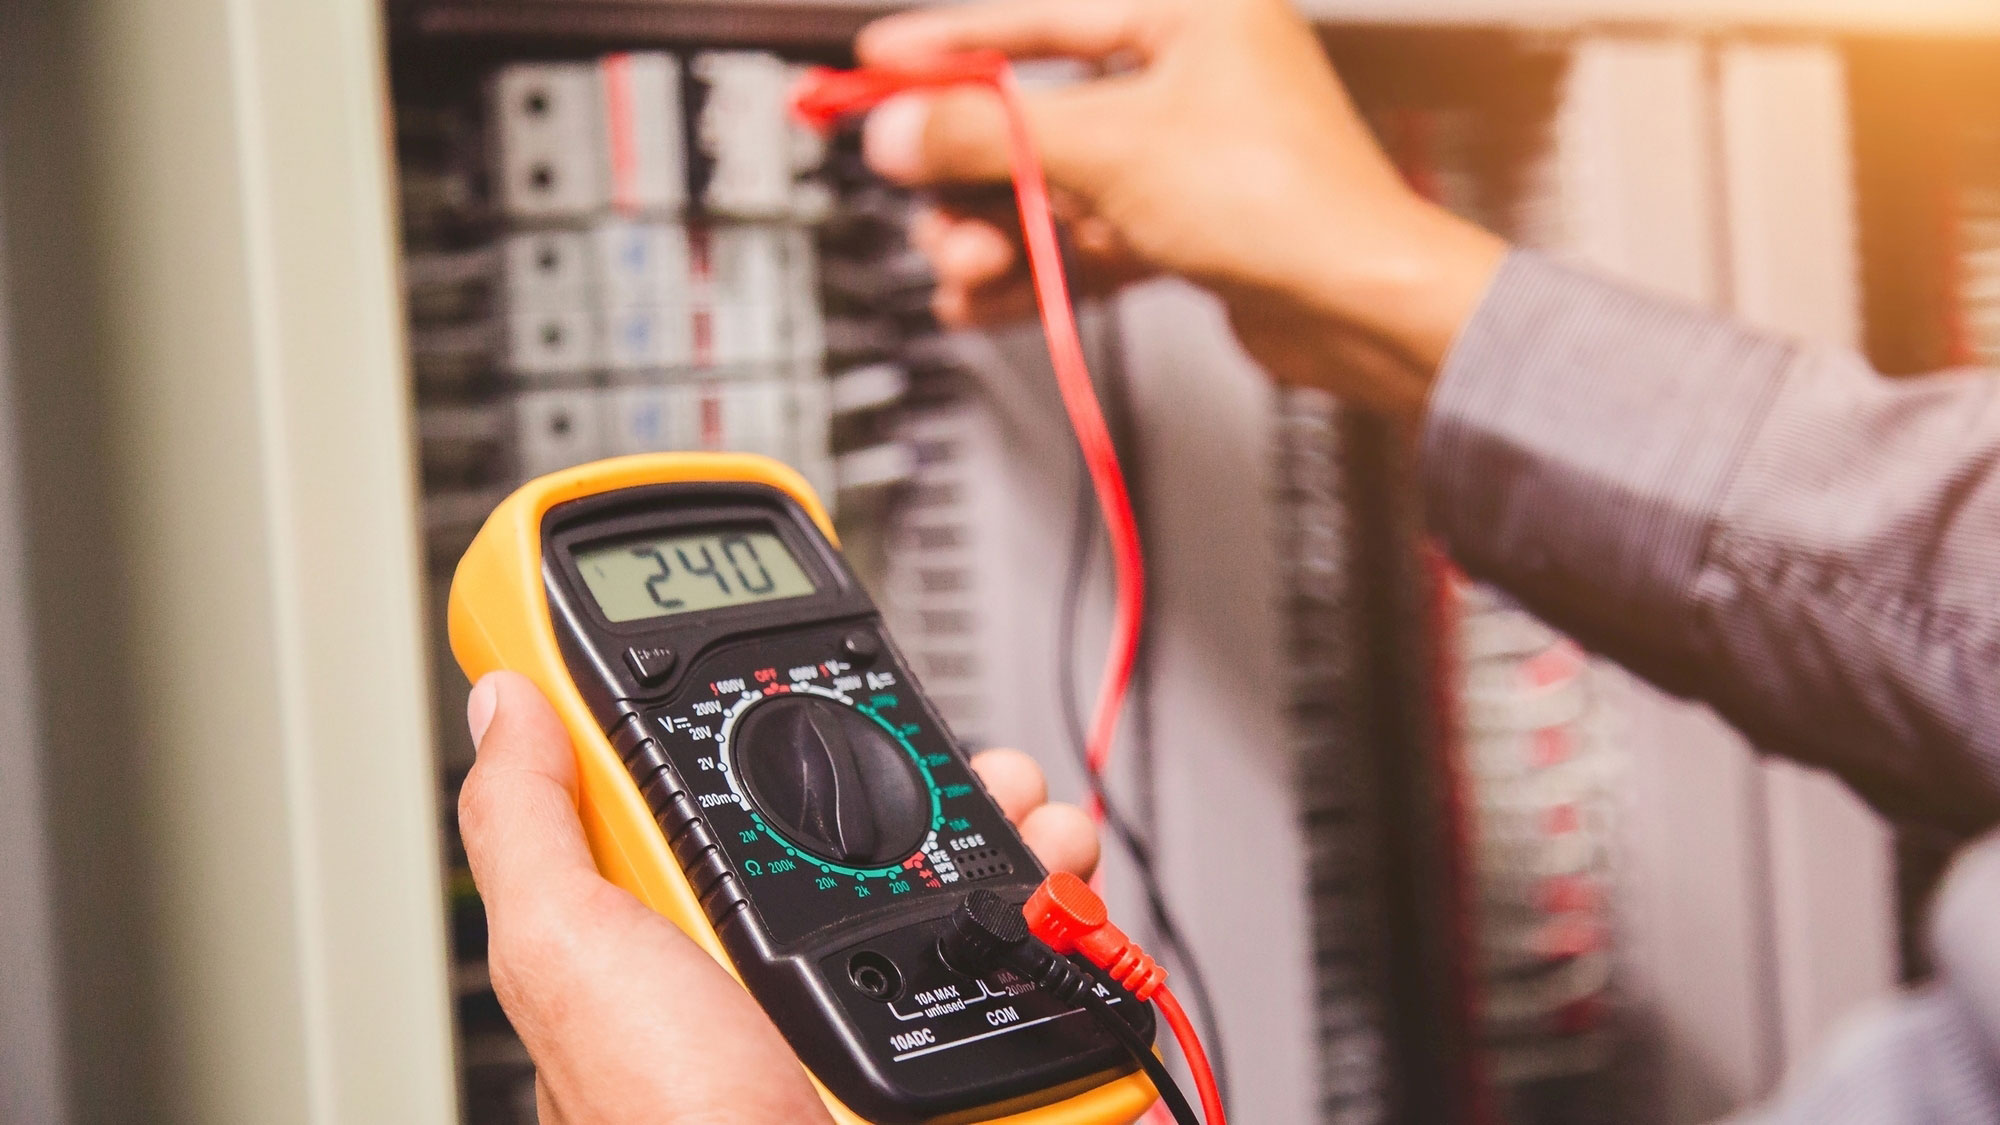 Engineer is measuring voltage or current by voltmeter in control panel